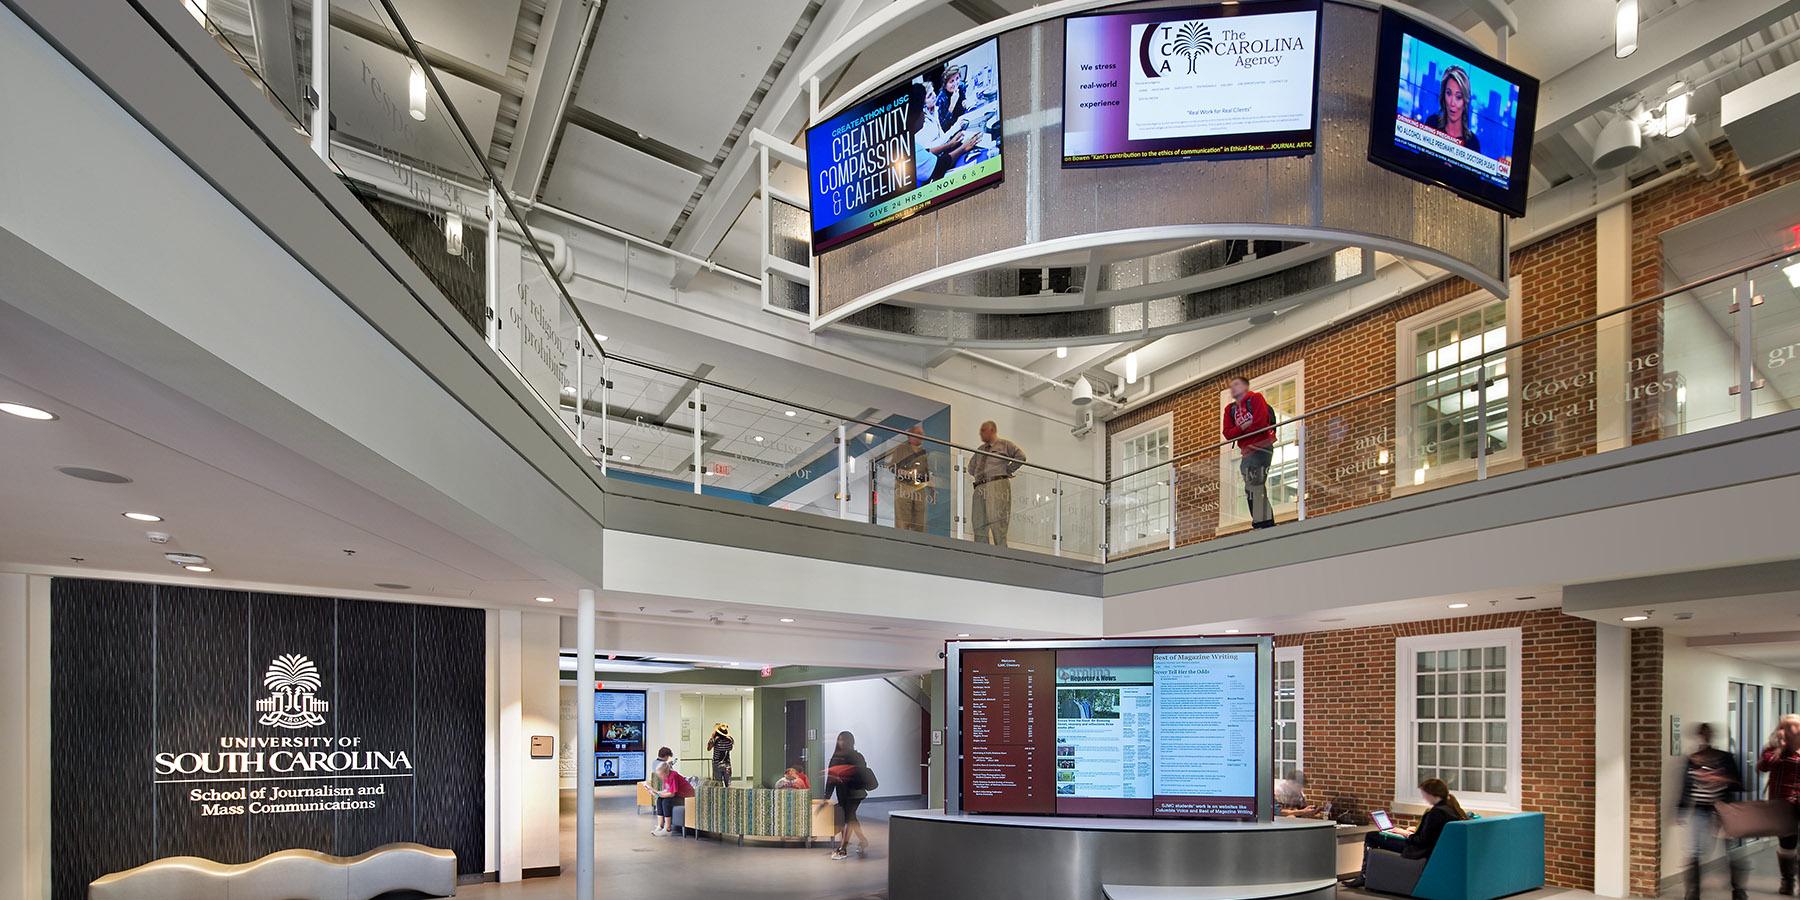 Boudreaux architects and interior designers worked with University of South Carolina on the Journalism Building project.